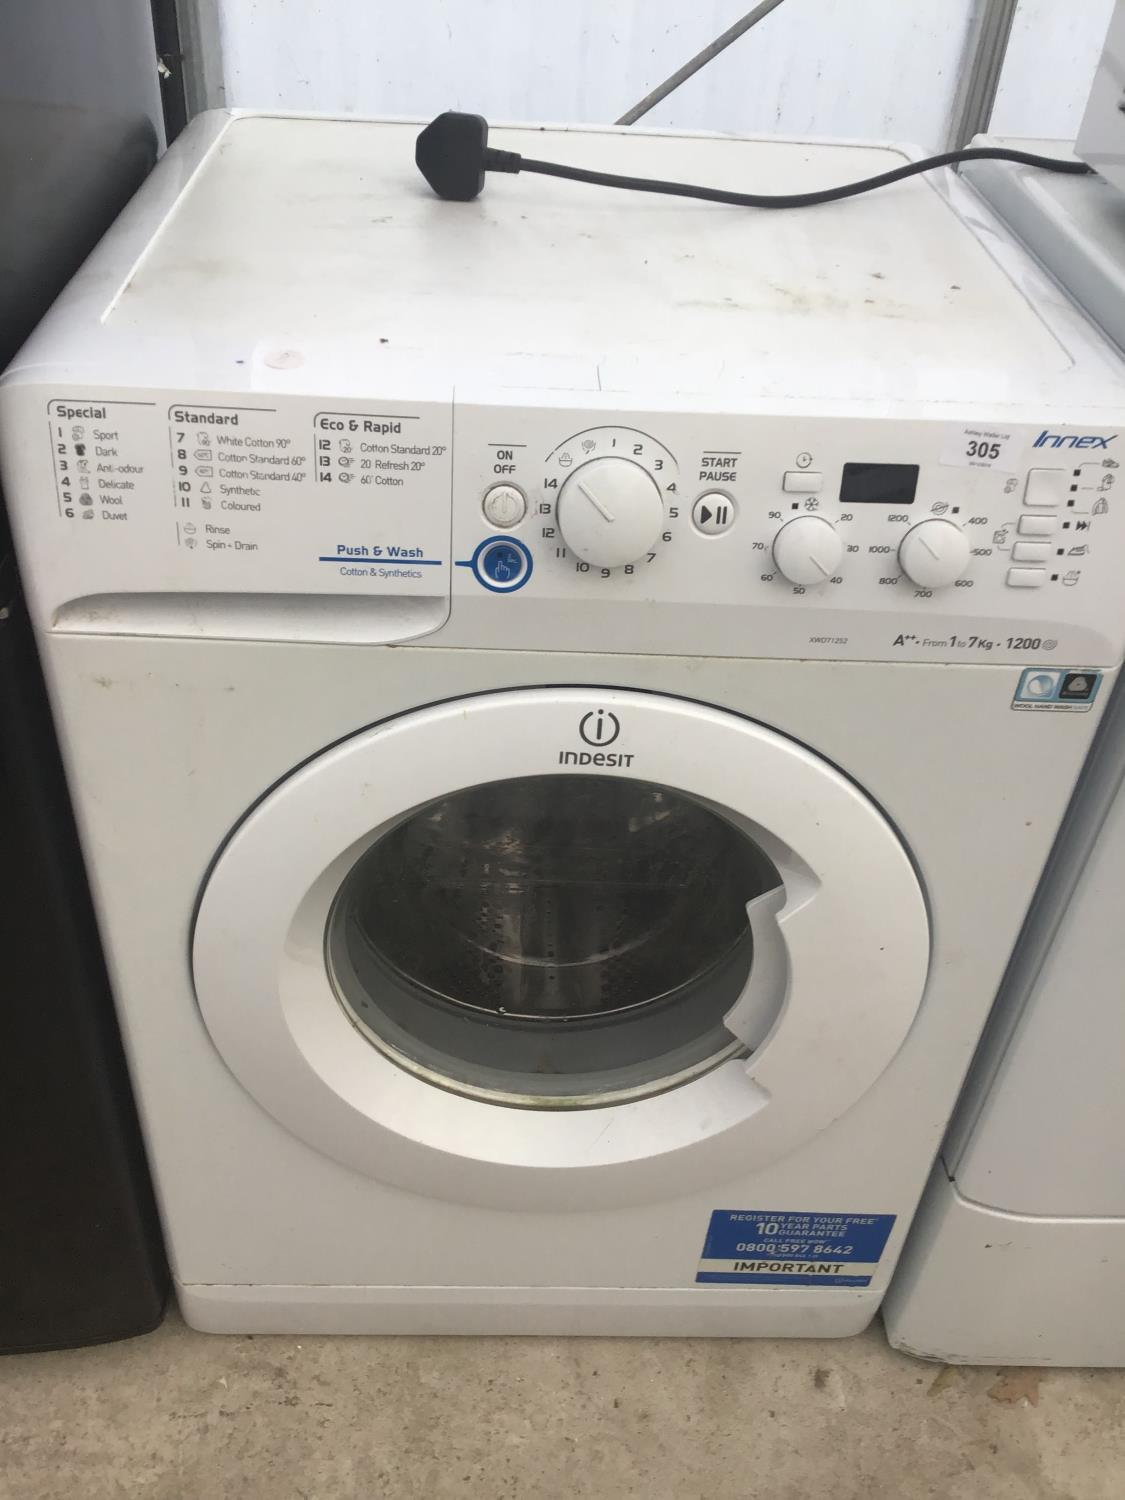 Lot 305 - AN INDESIT INNEX WASHER IN WORKING ORDER